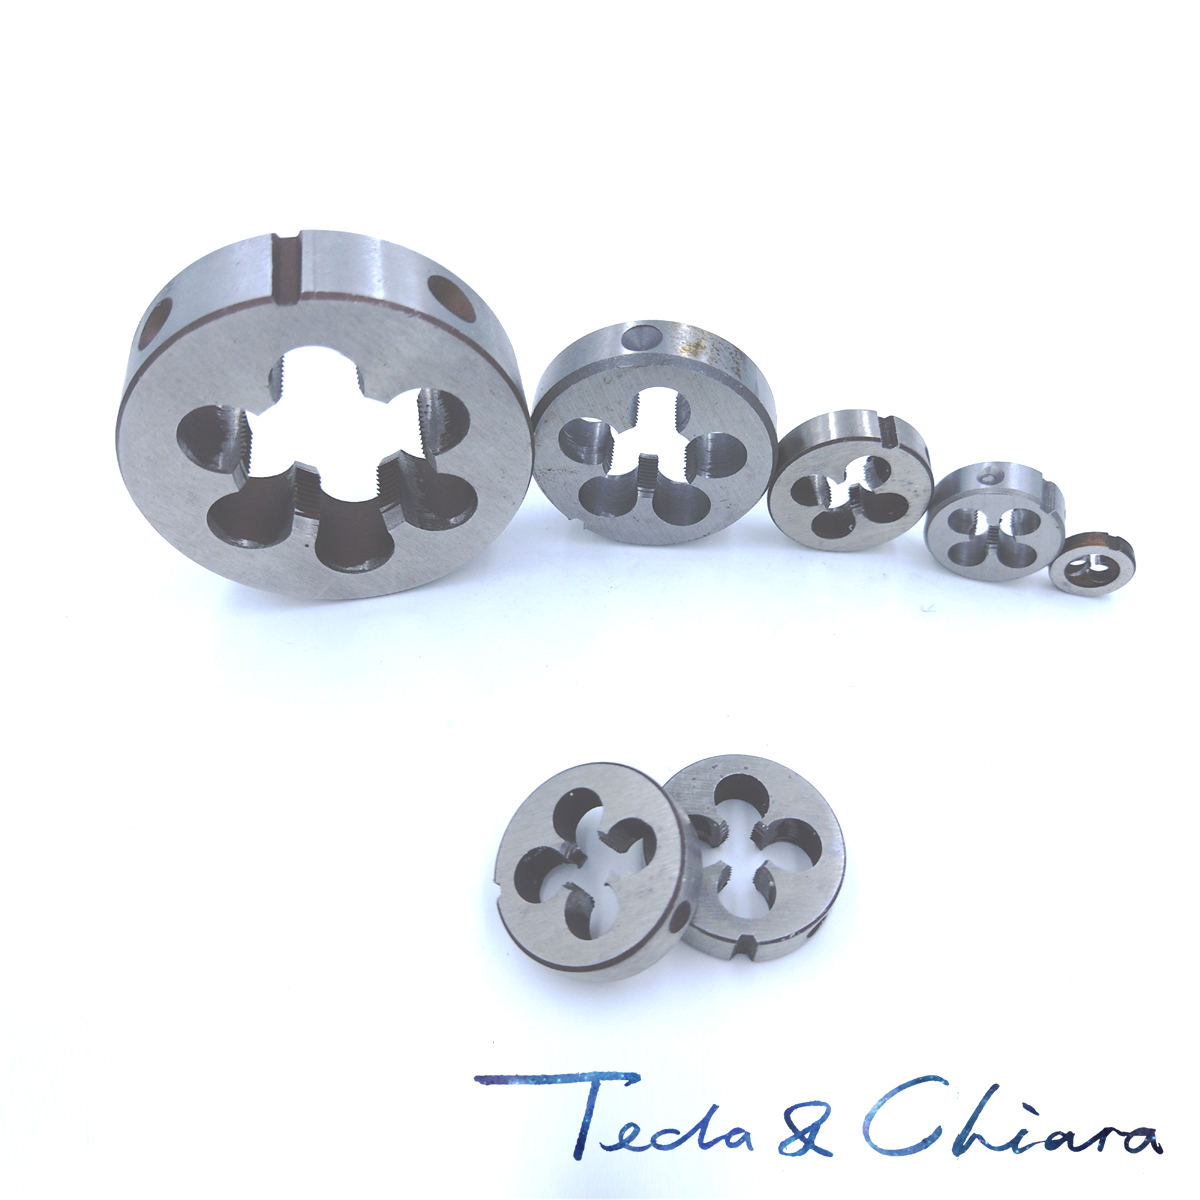 1Pc M8 M9 X 0.5mm 0.75mm 1mm 1.25mm Metric Die Right Hand Pitch Threading Tools For Mold Machining * 0.5 0.75 1 1.25